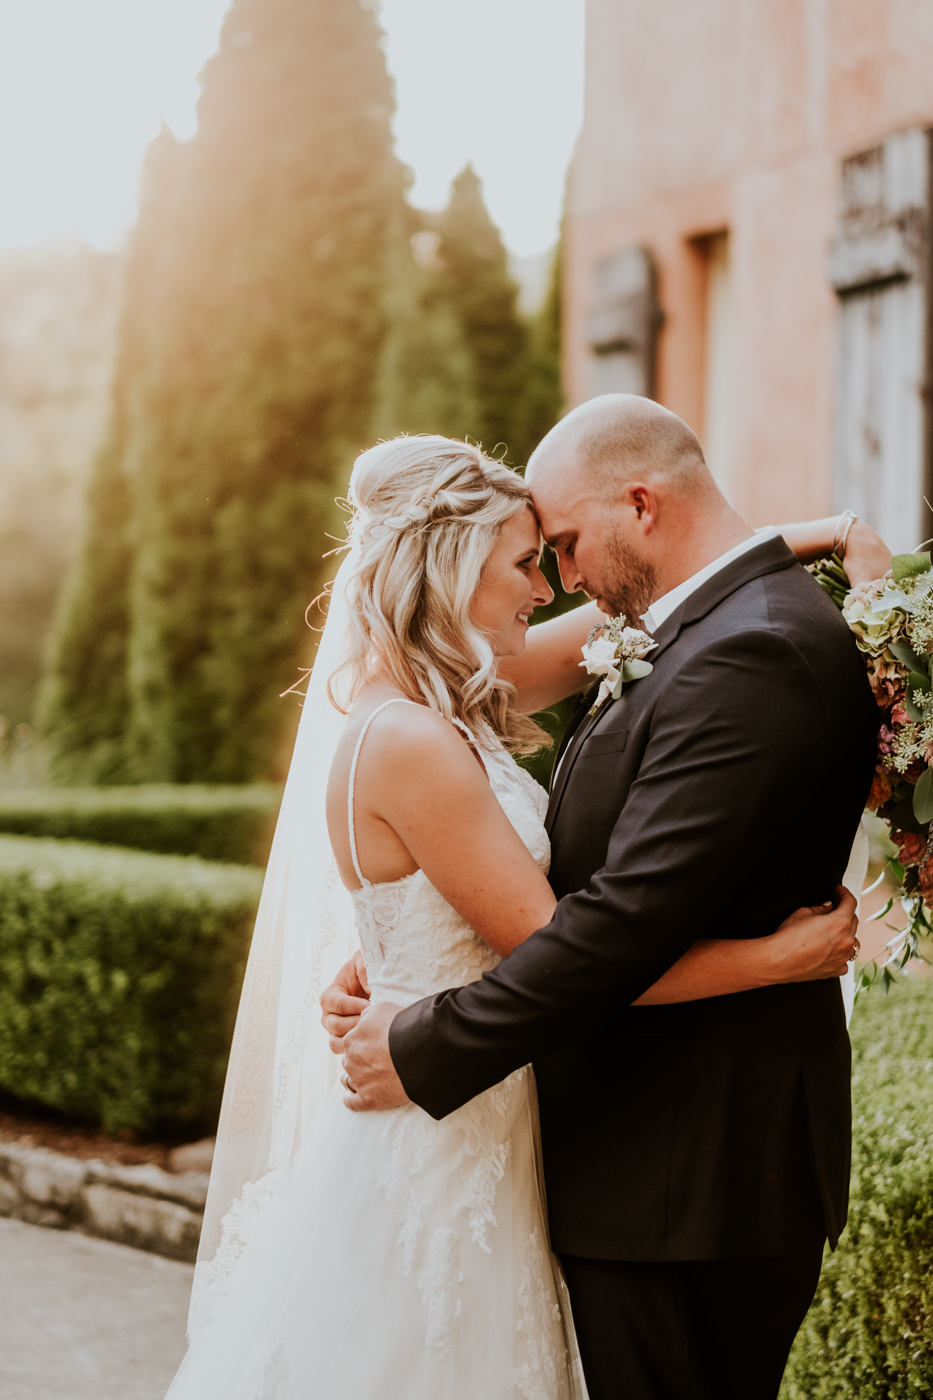 Haley+Kurtis.Blog©mileswittboyer.com2018-52.jpg